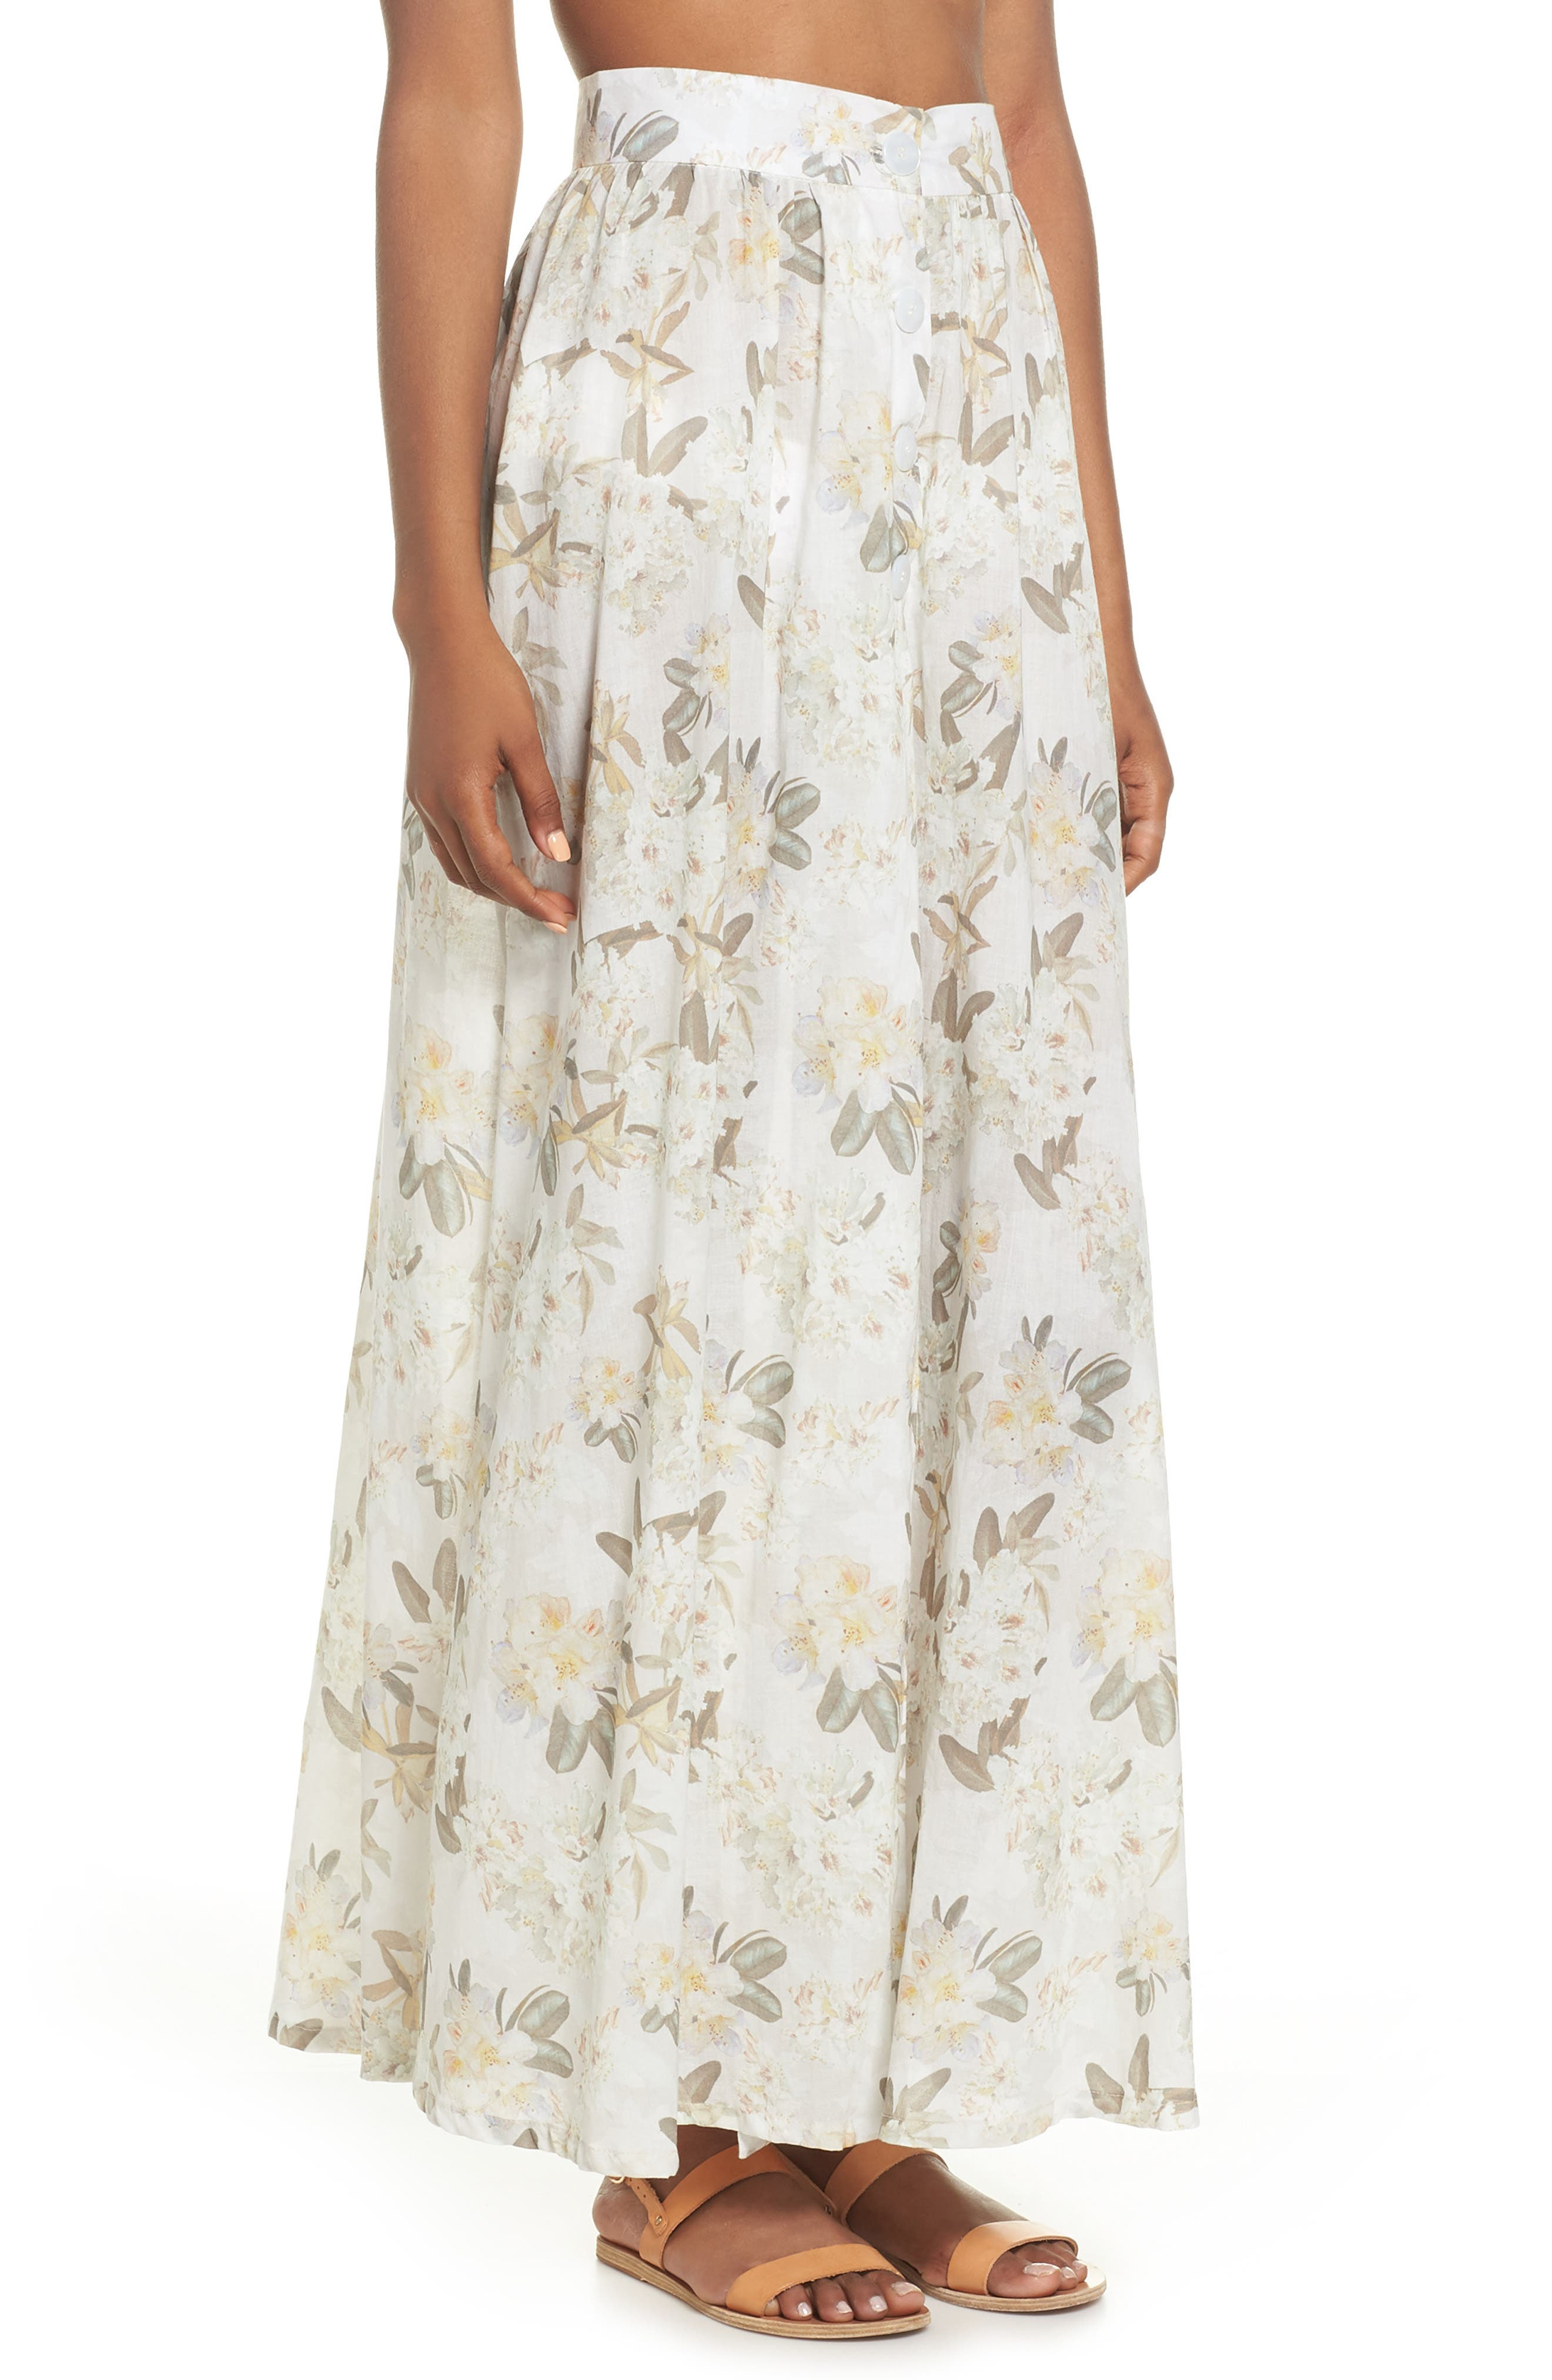 Edith Cover-Up Maxi Skirt,                             Alternate thumbnail 3, color,                             Ete Floral White